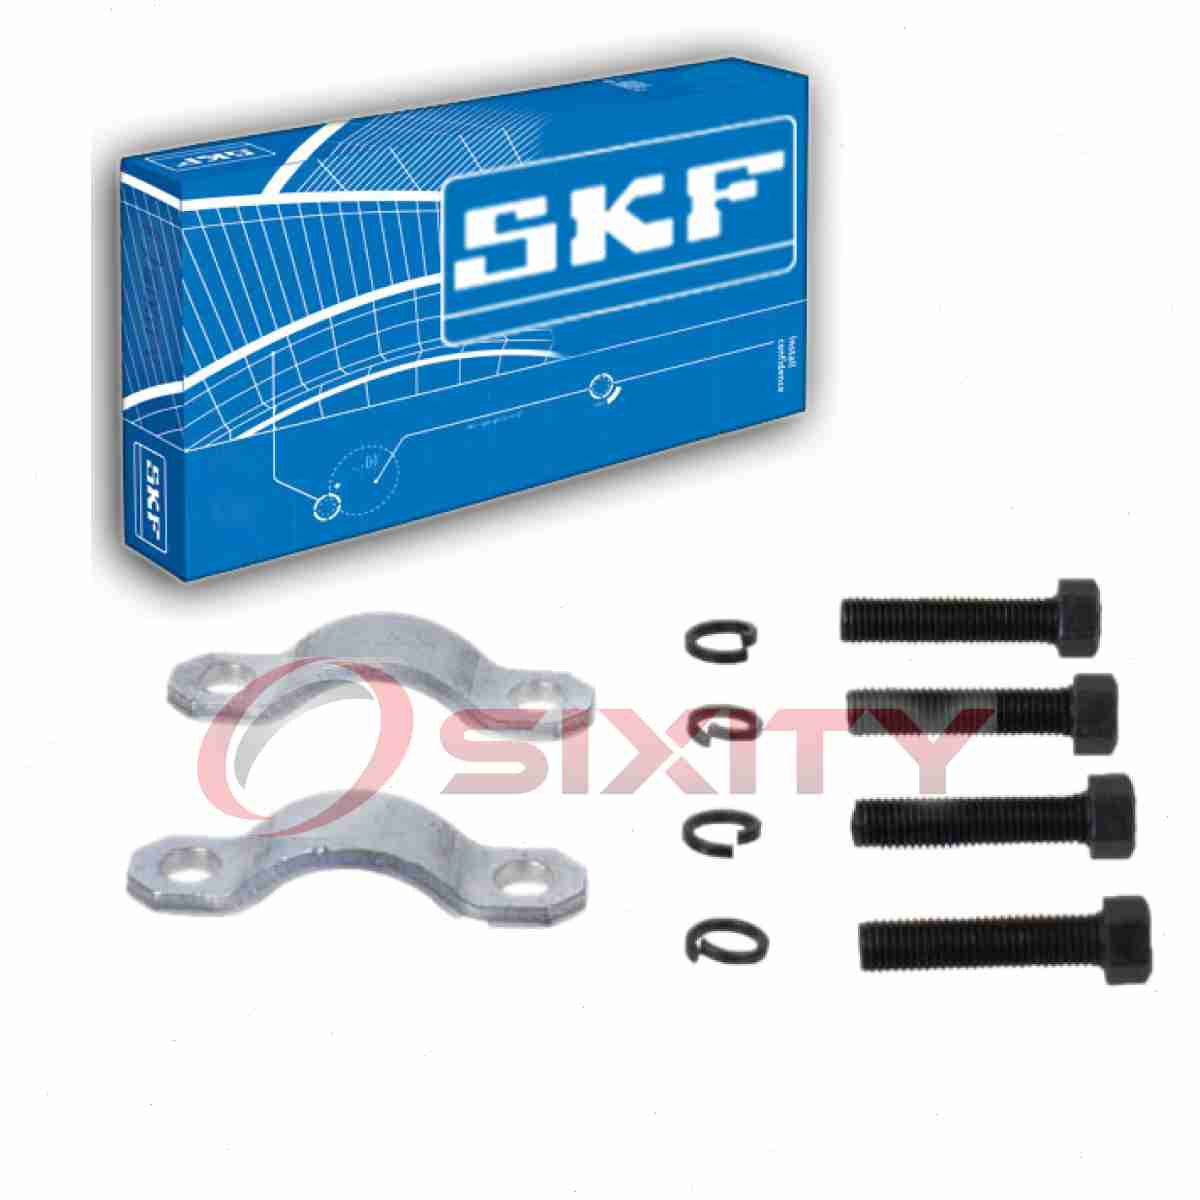 SKF Rear Universal Joint for 1982-1987 Buick Regal U-Joint UJoint le